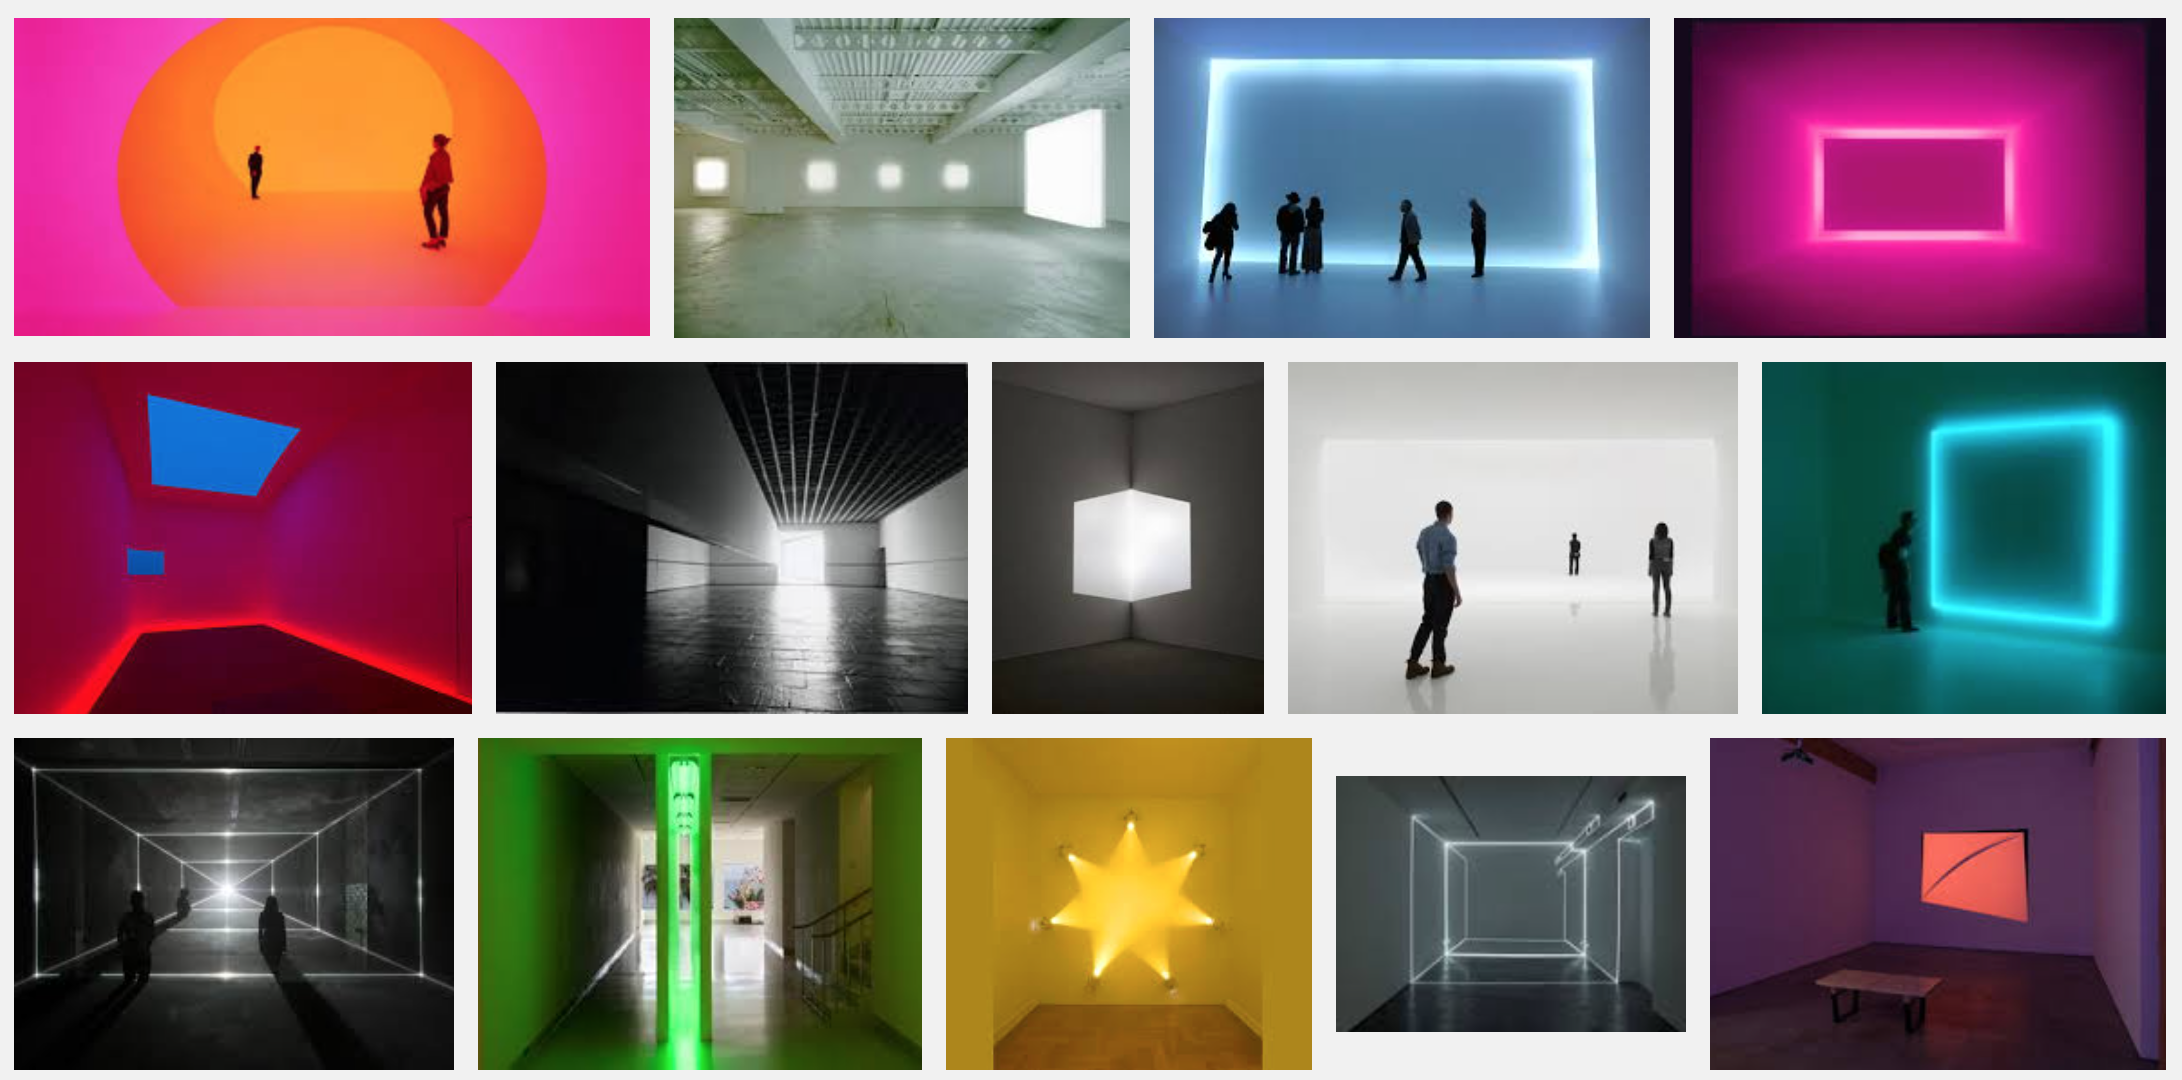 James Turrell and other artists create transcendent spaces by carefully manipulating the quality of light.